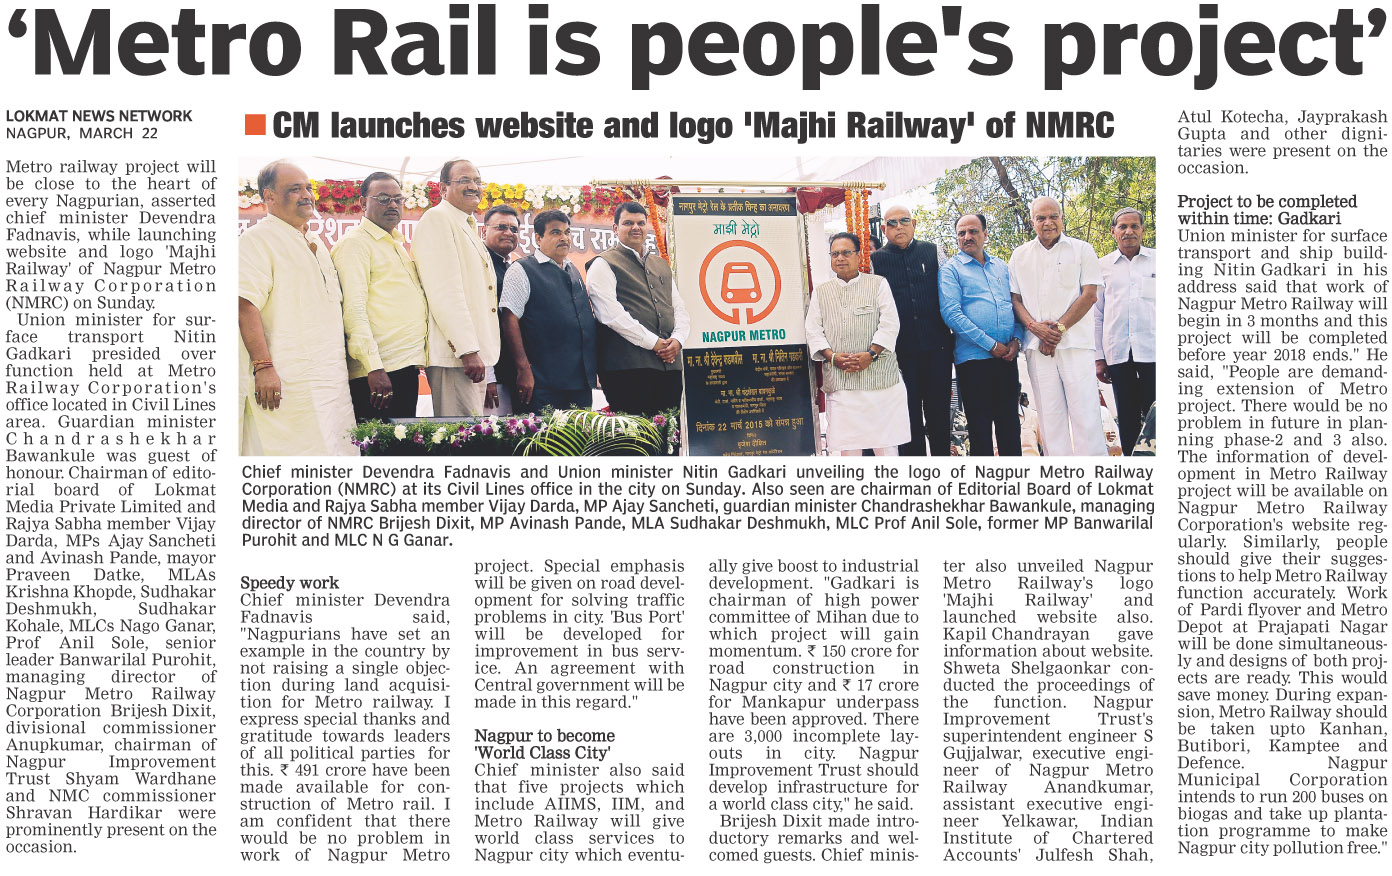 'Metro Rail is people's project'